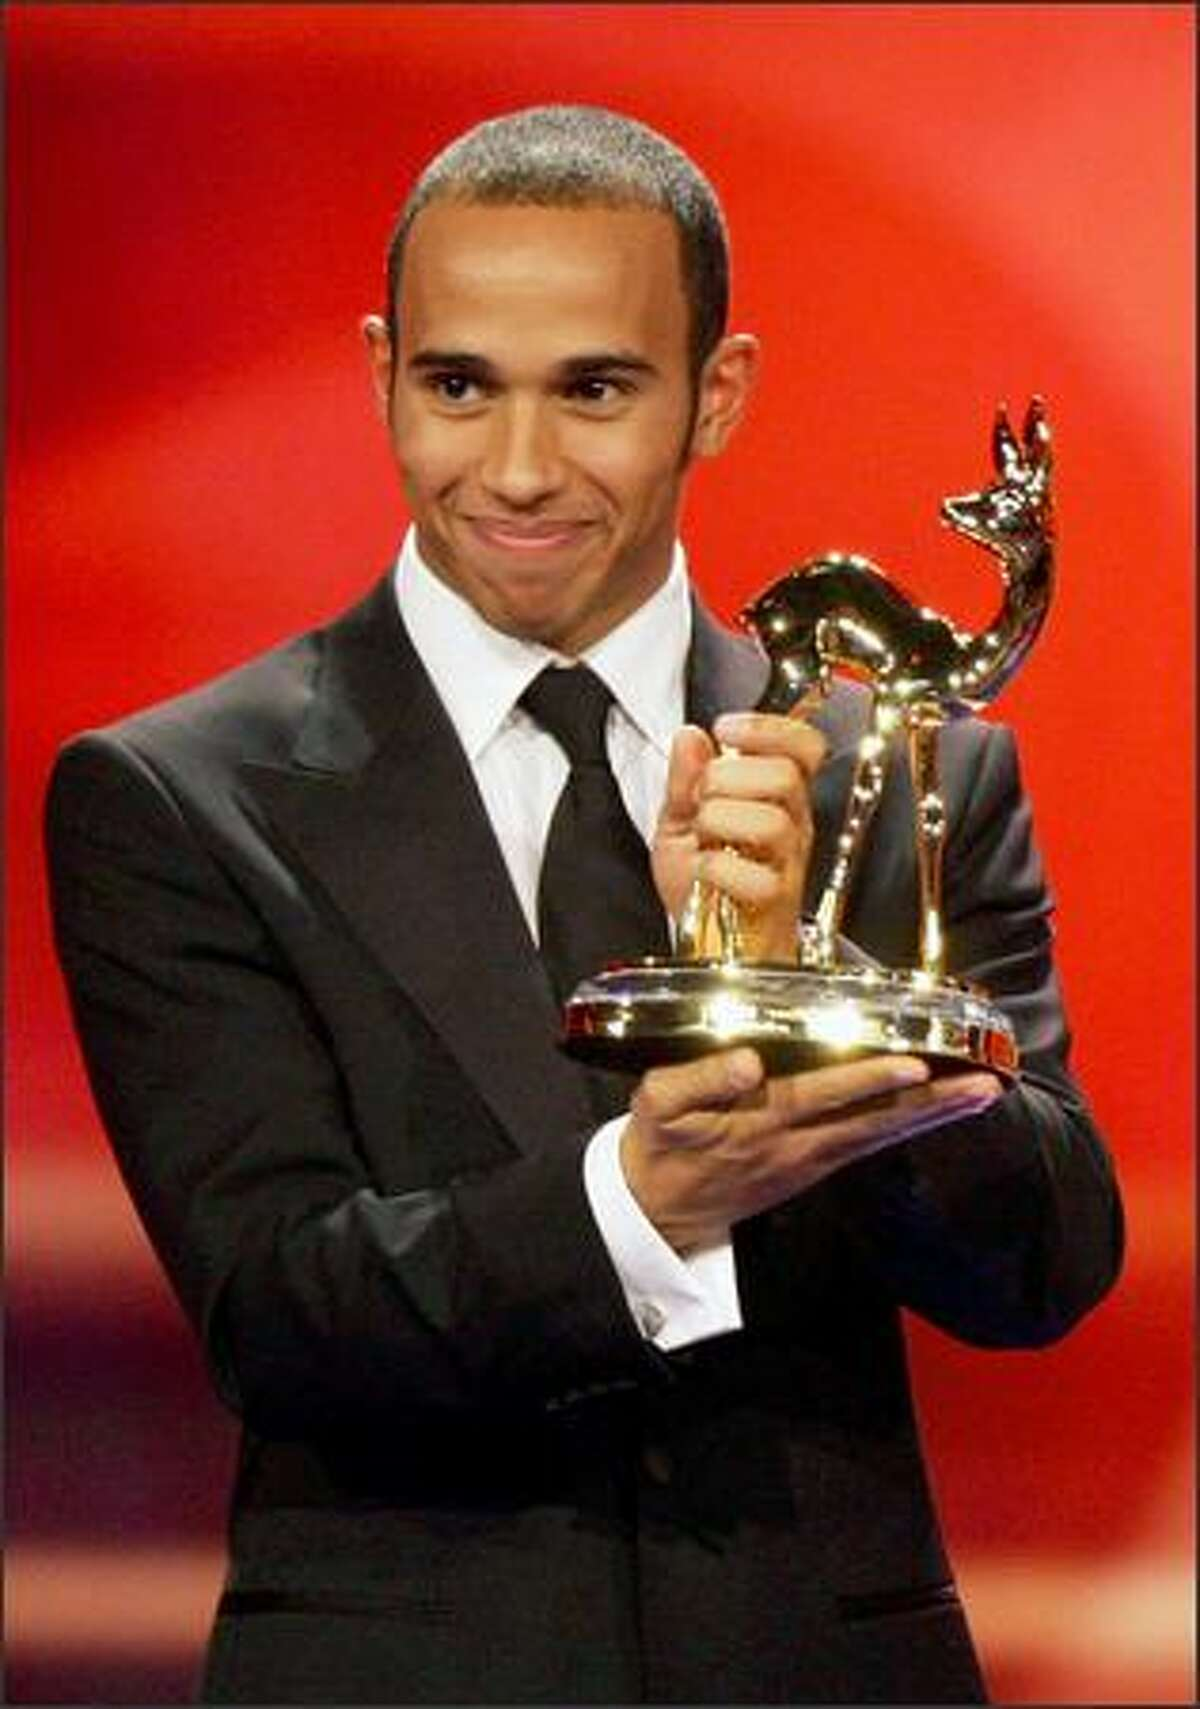 Formula One driver Lewis Hamilton recieves the Special Jury Bambi at the 60th Bambi Awards on Thursday in Offenburg, Germany. The awards ceremony takes place every year under the patronage of German publisher Hubert Burda and awards nominees in the sectors of communication, entertainment and show business as well as economy, politics and sports.